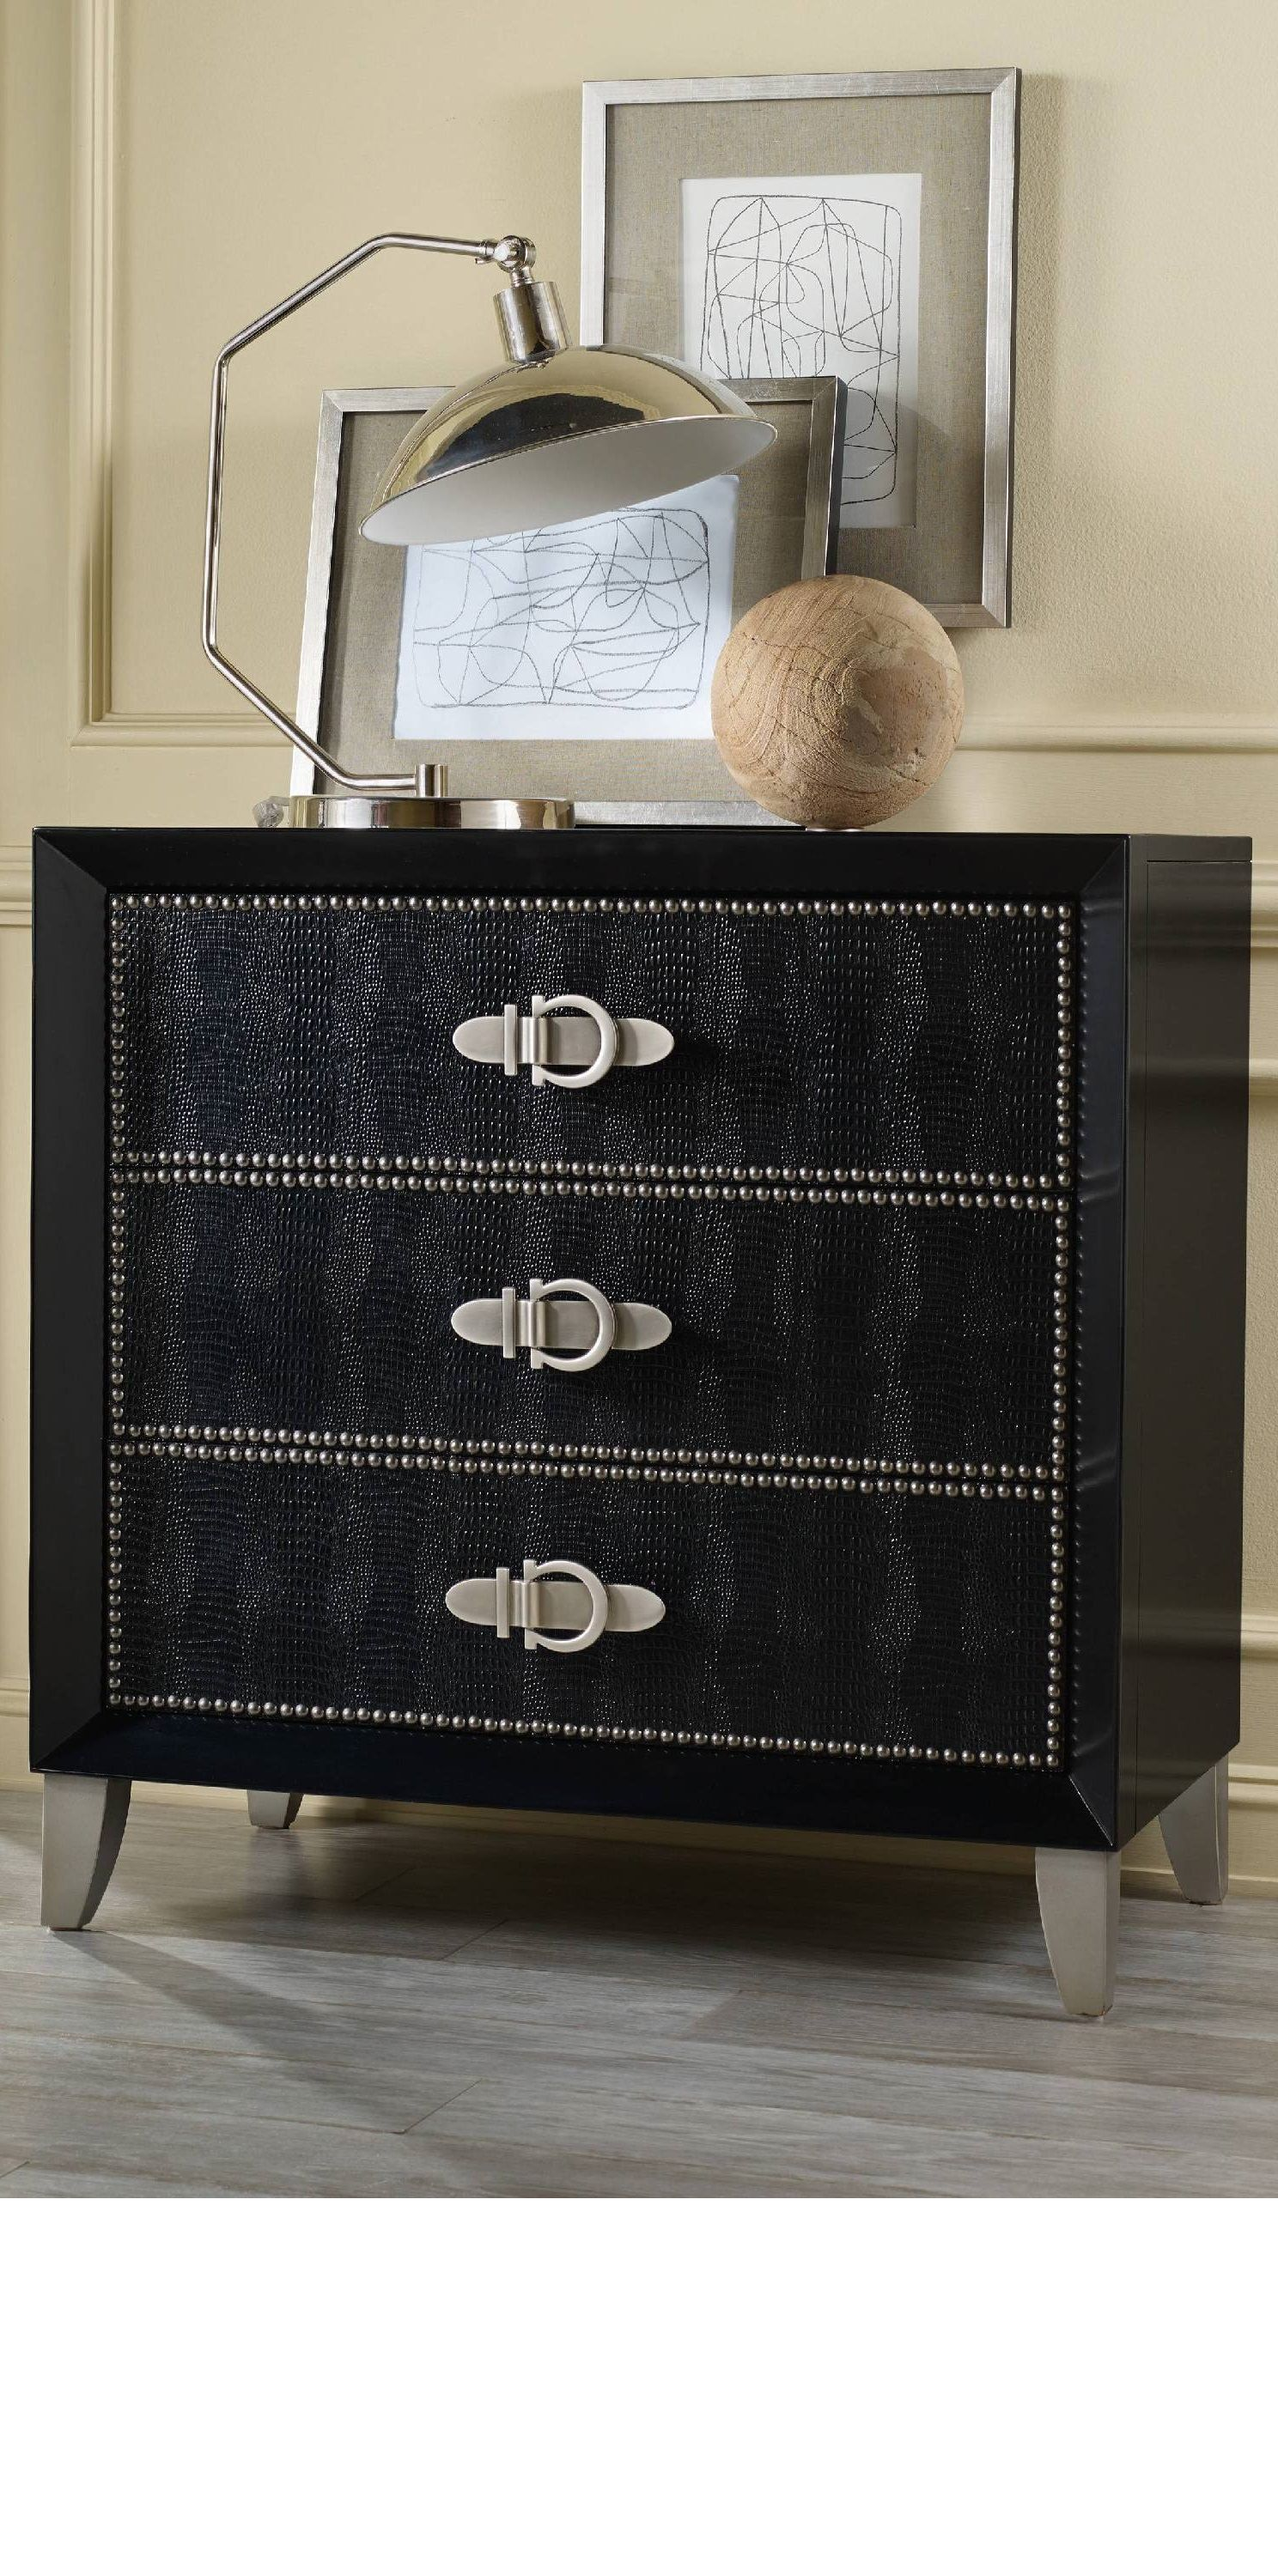 Luxury Chest Of Drawers Chest Of Drawers Luxury Chest Of Drawers Luxury Chest Of Drawers Guest Room Furniture Hotel Furniture Luxurious Bedrooms